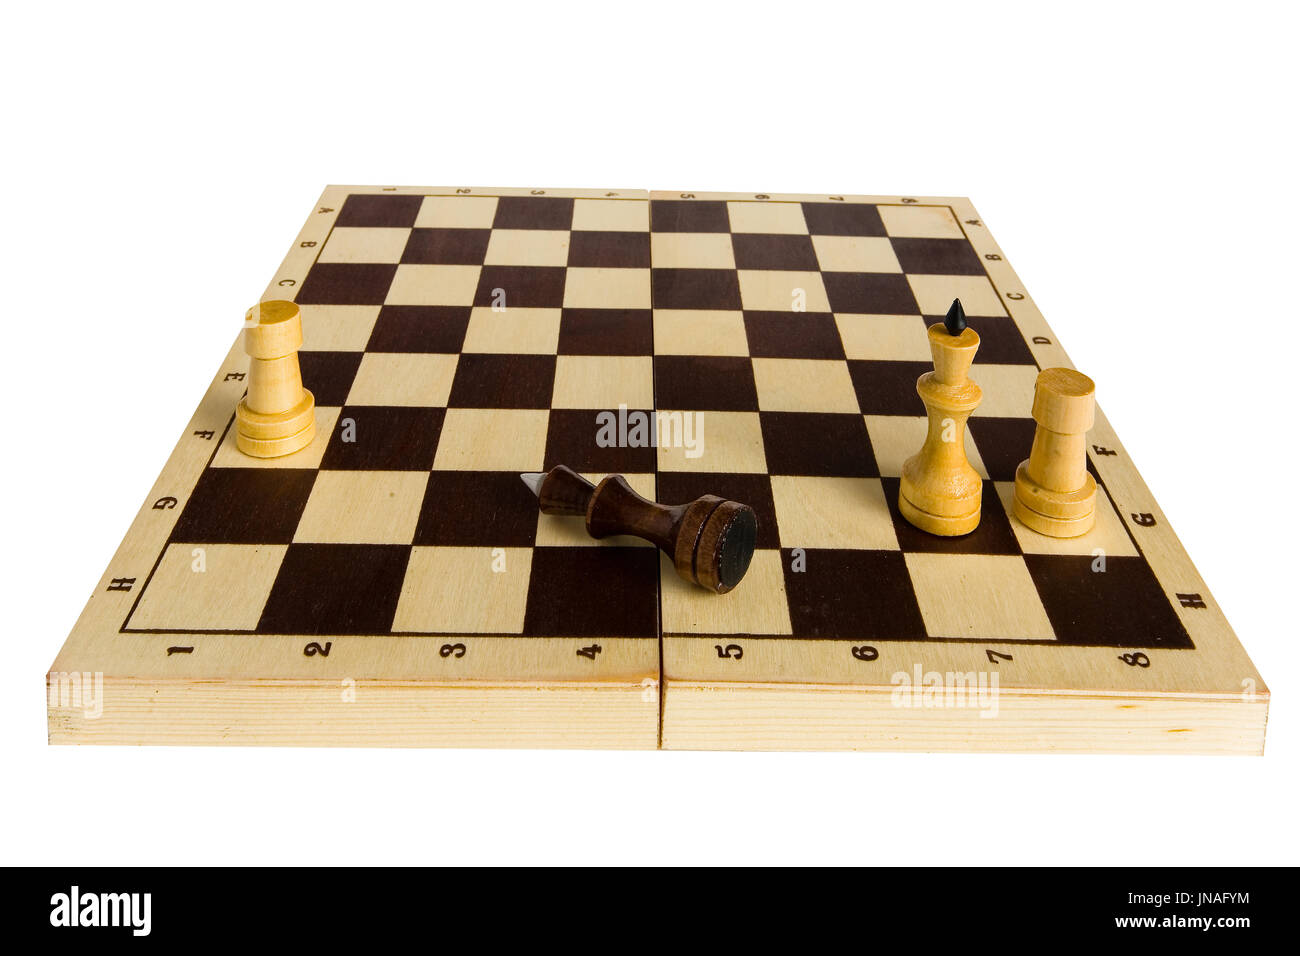 Endgame. The black chess king is defeated and lies on the board. - Stock Image